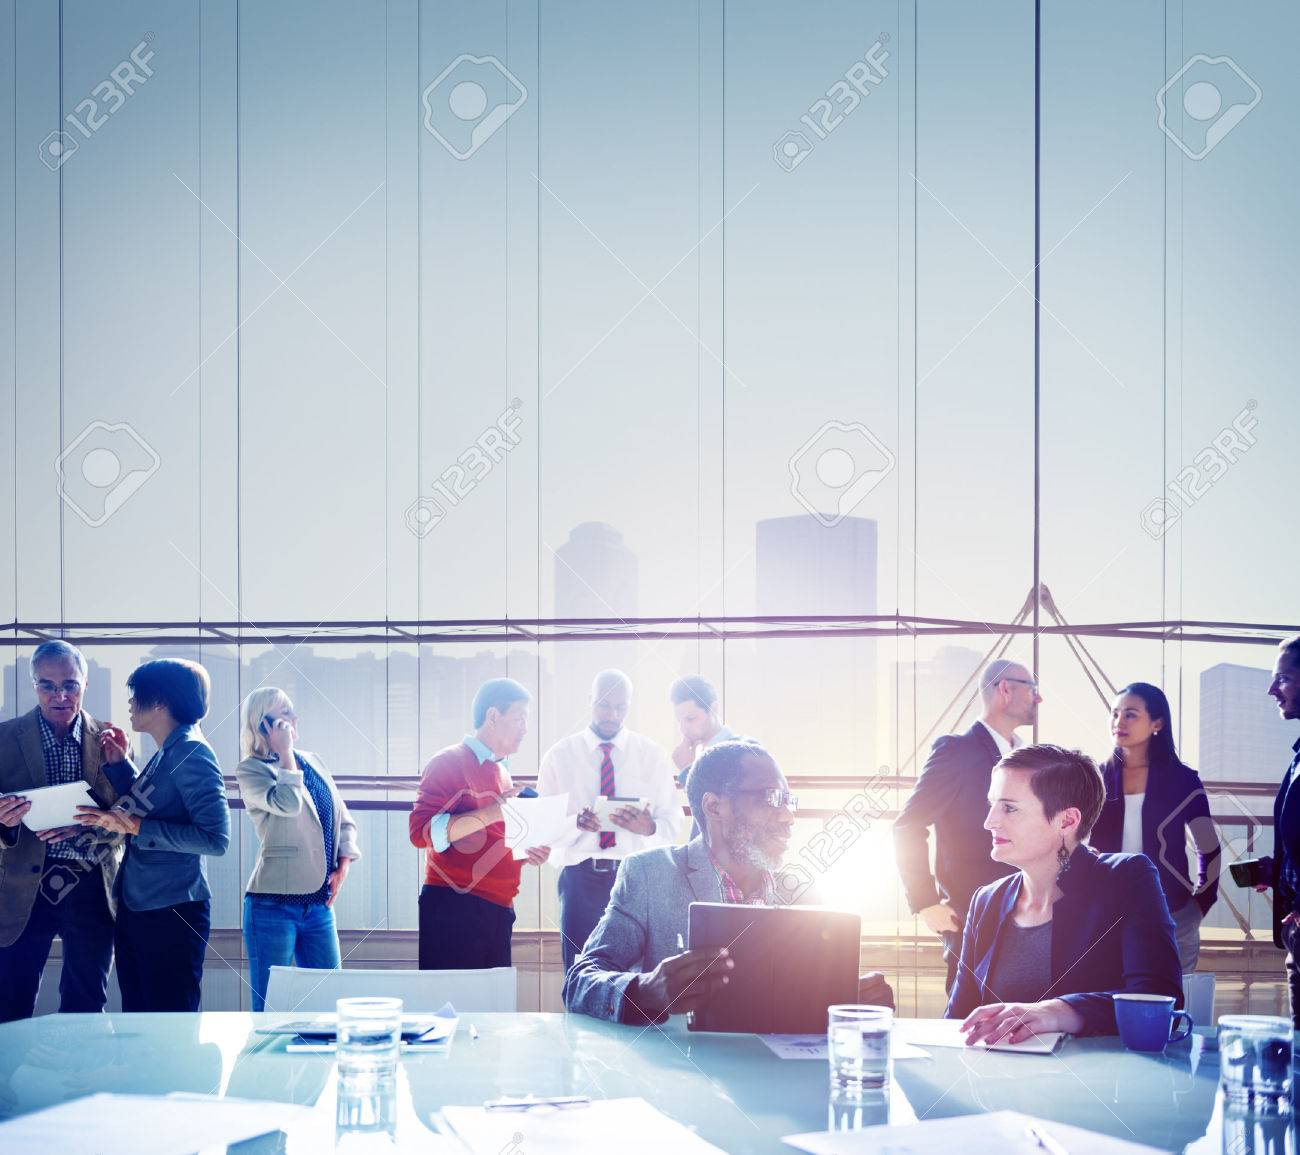 Business People Meeting Brainstorming Team Concept Stock Photo - 41340384